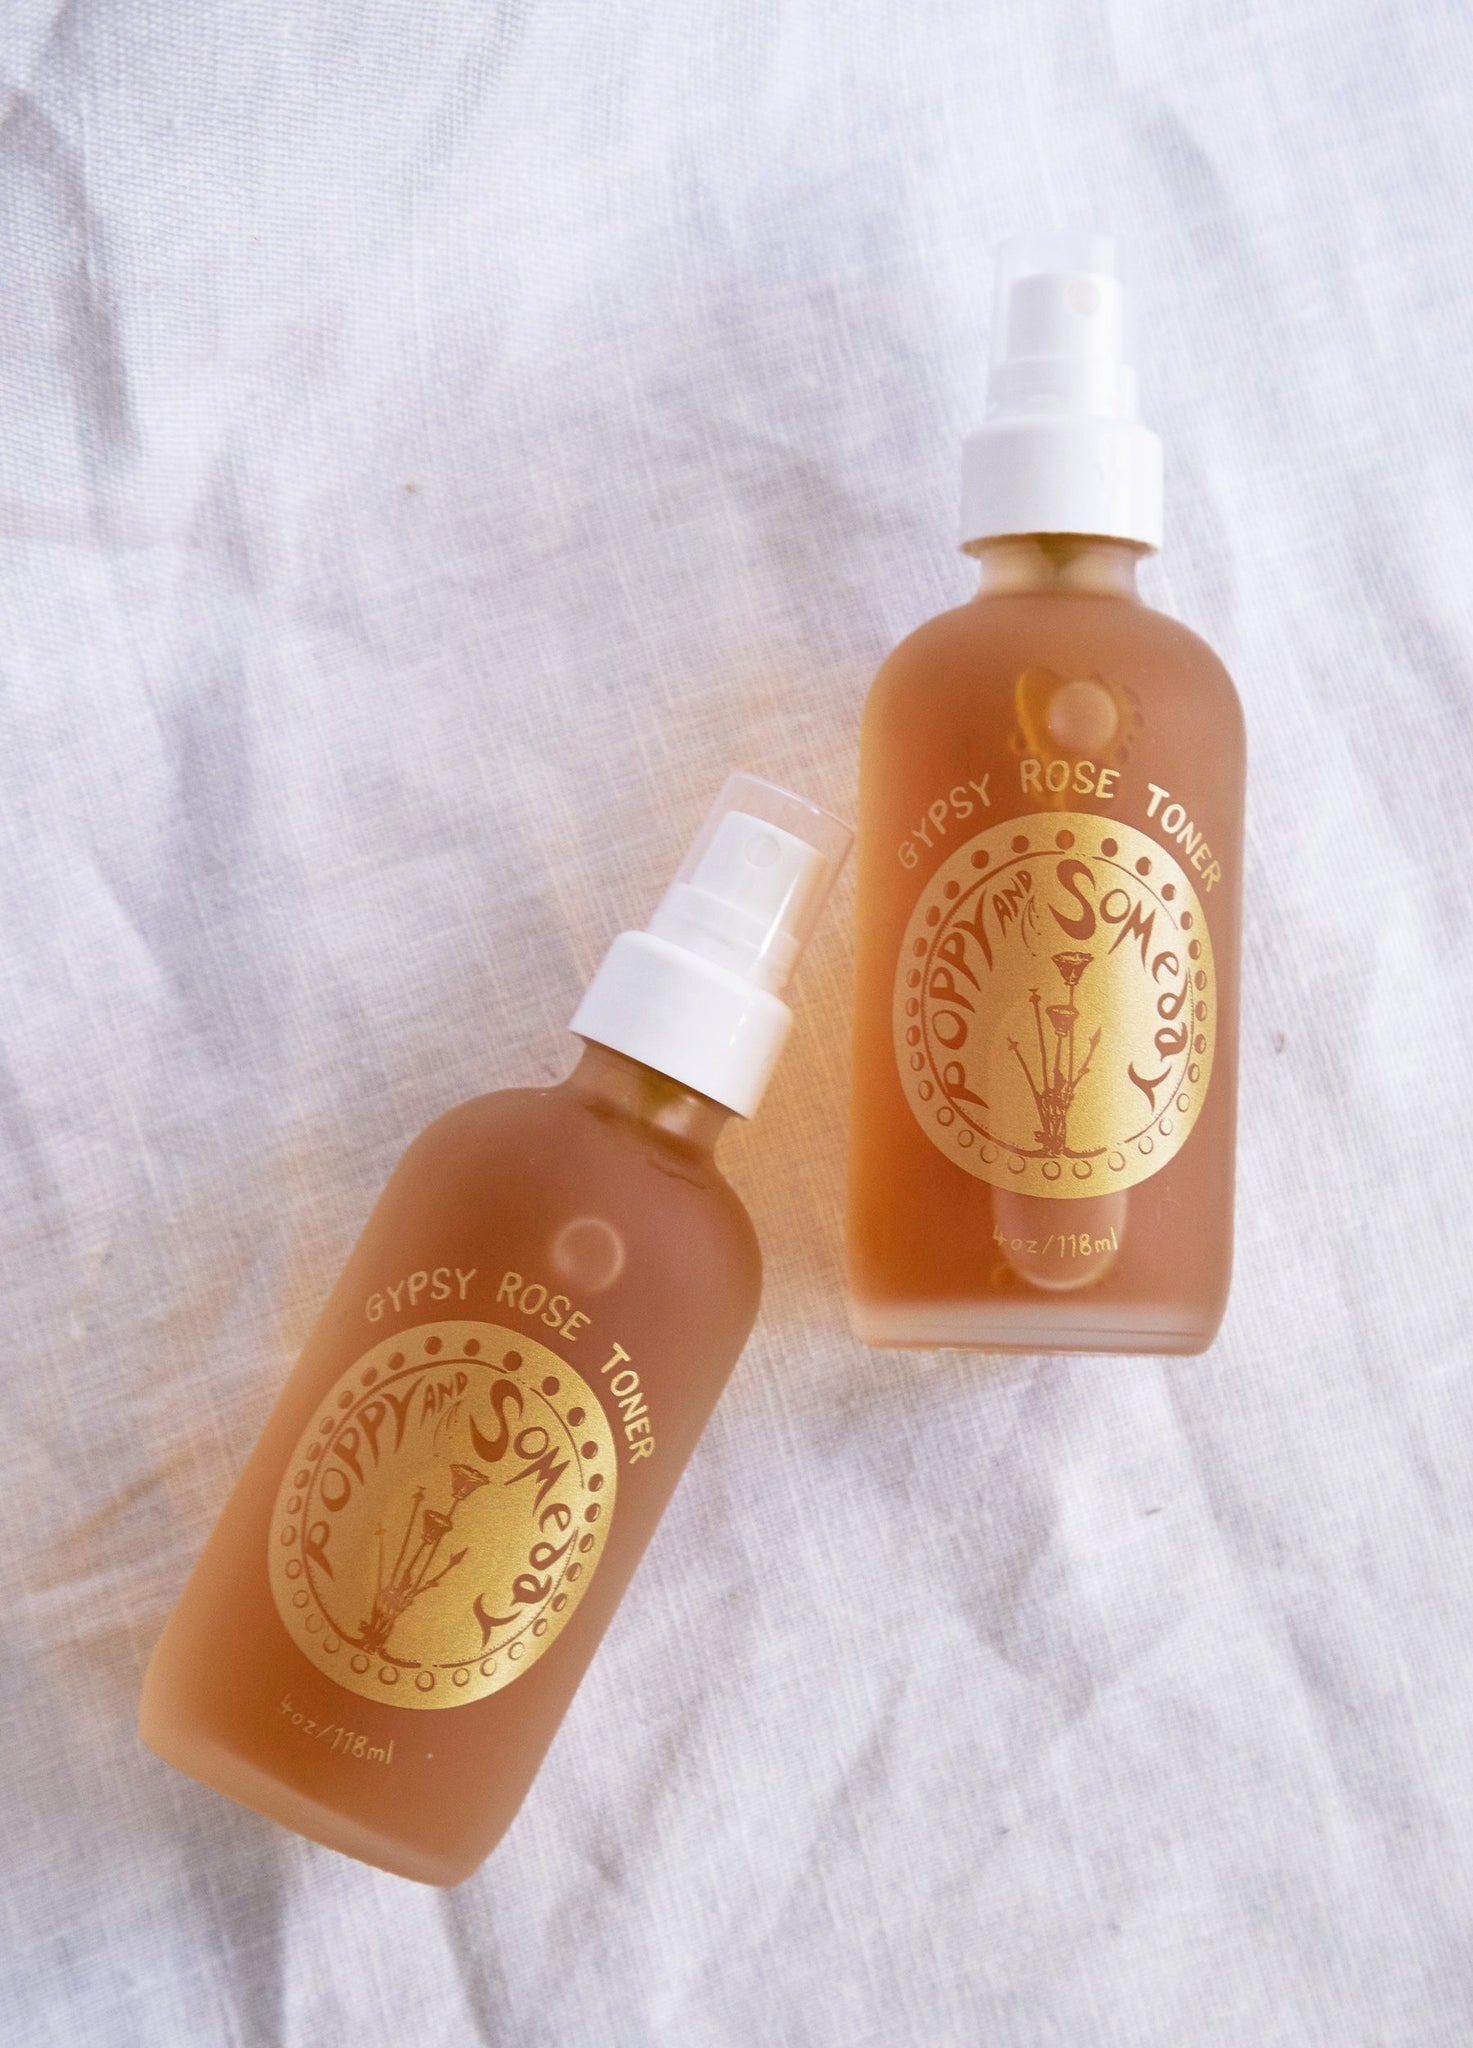 Poppy & Someday Gypsy Rose Toner